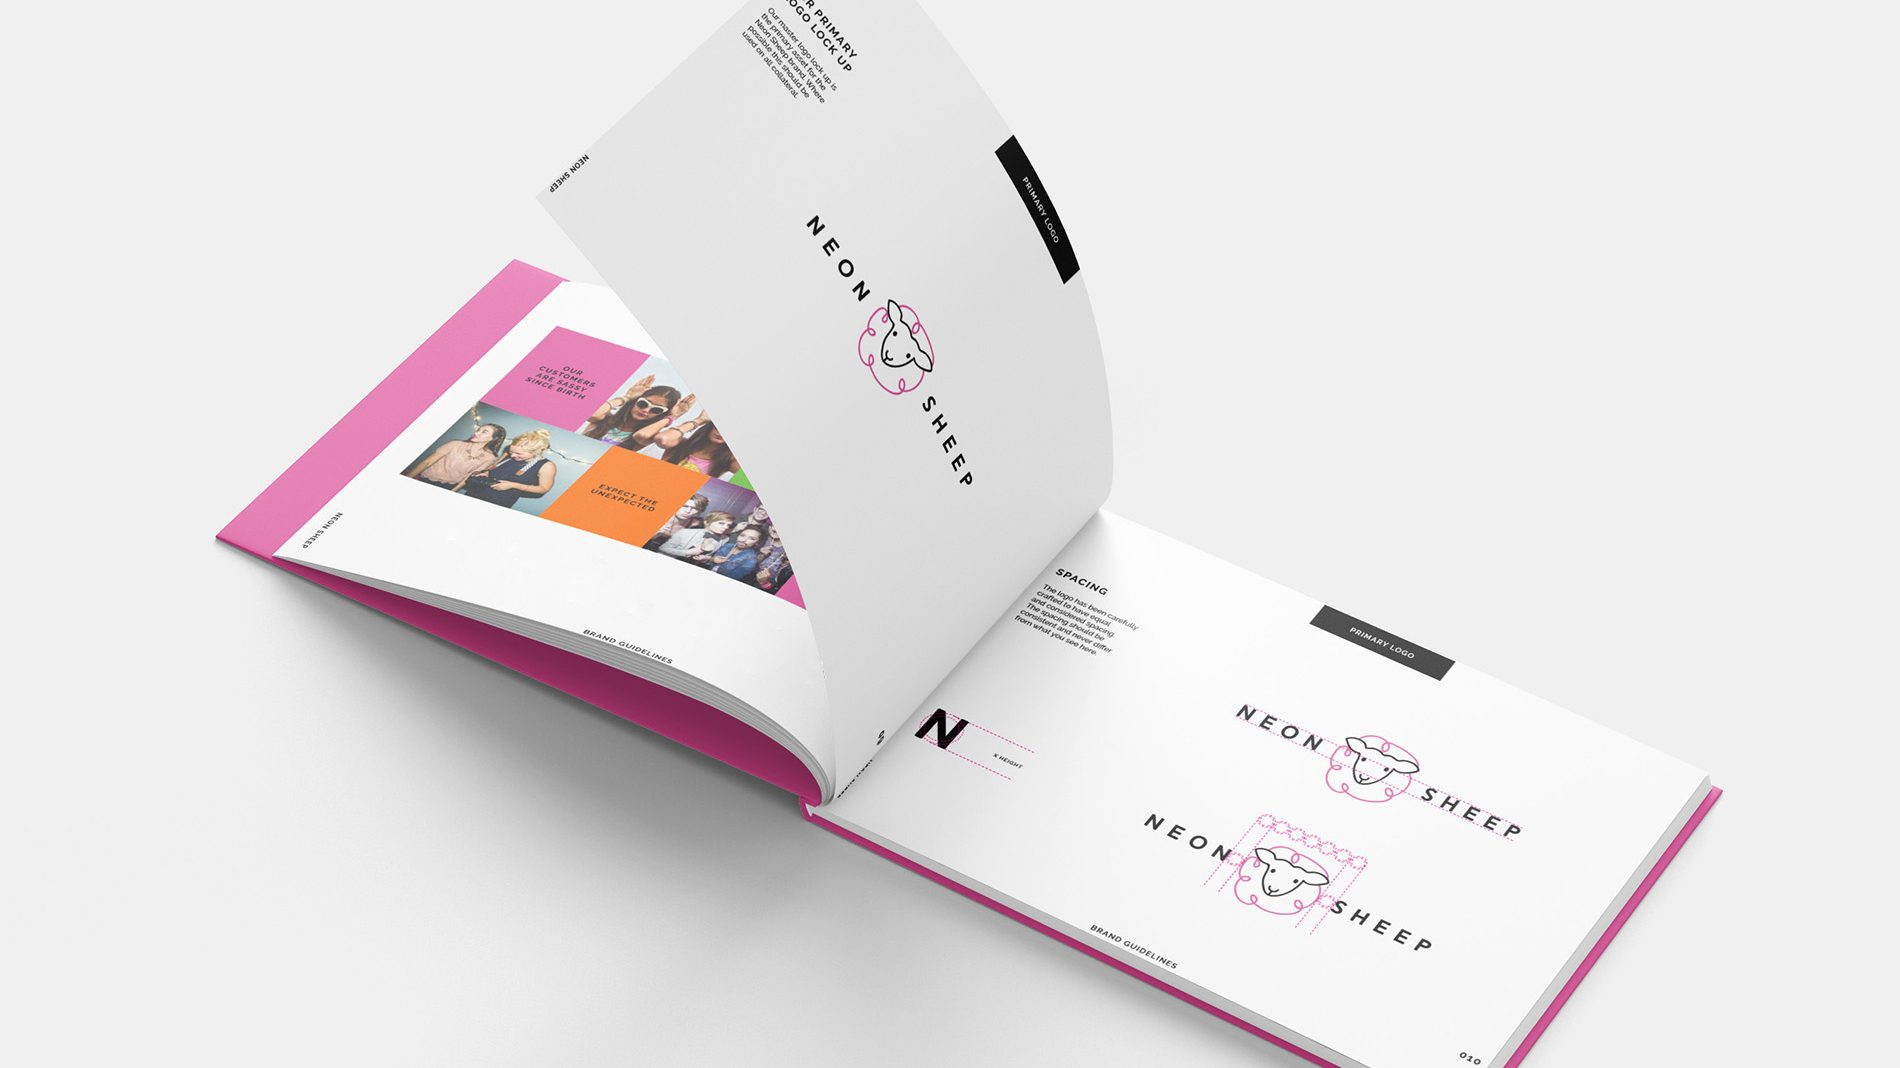 open spread of neon sheep branding guidelines